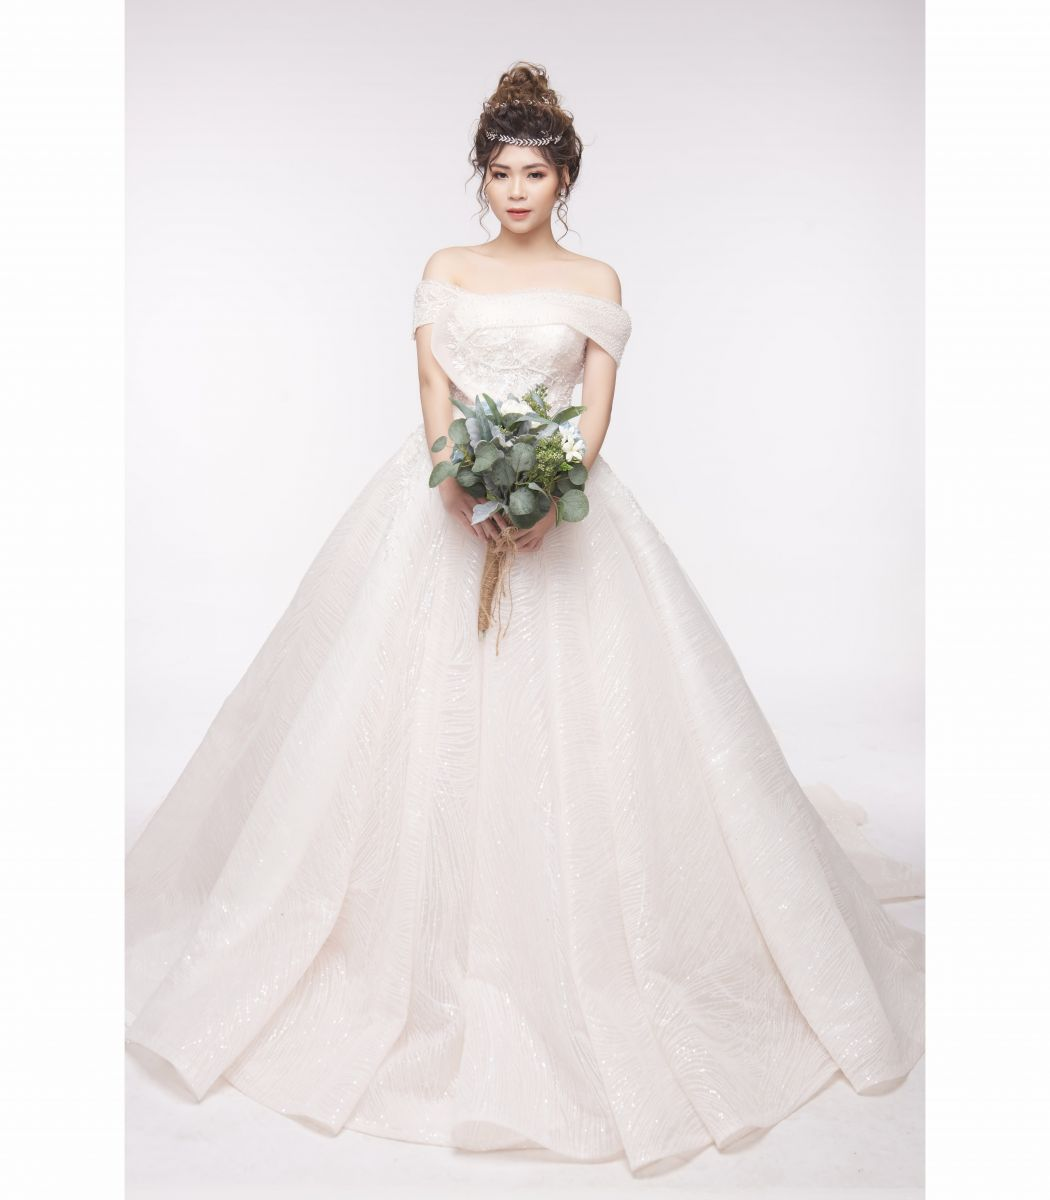 Dreamy Wedding Dress - Váy Xòe Nhũ Hồng